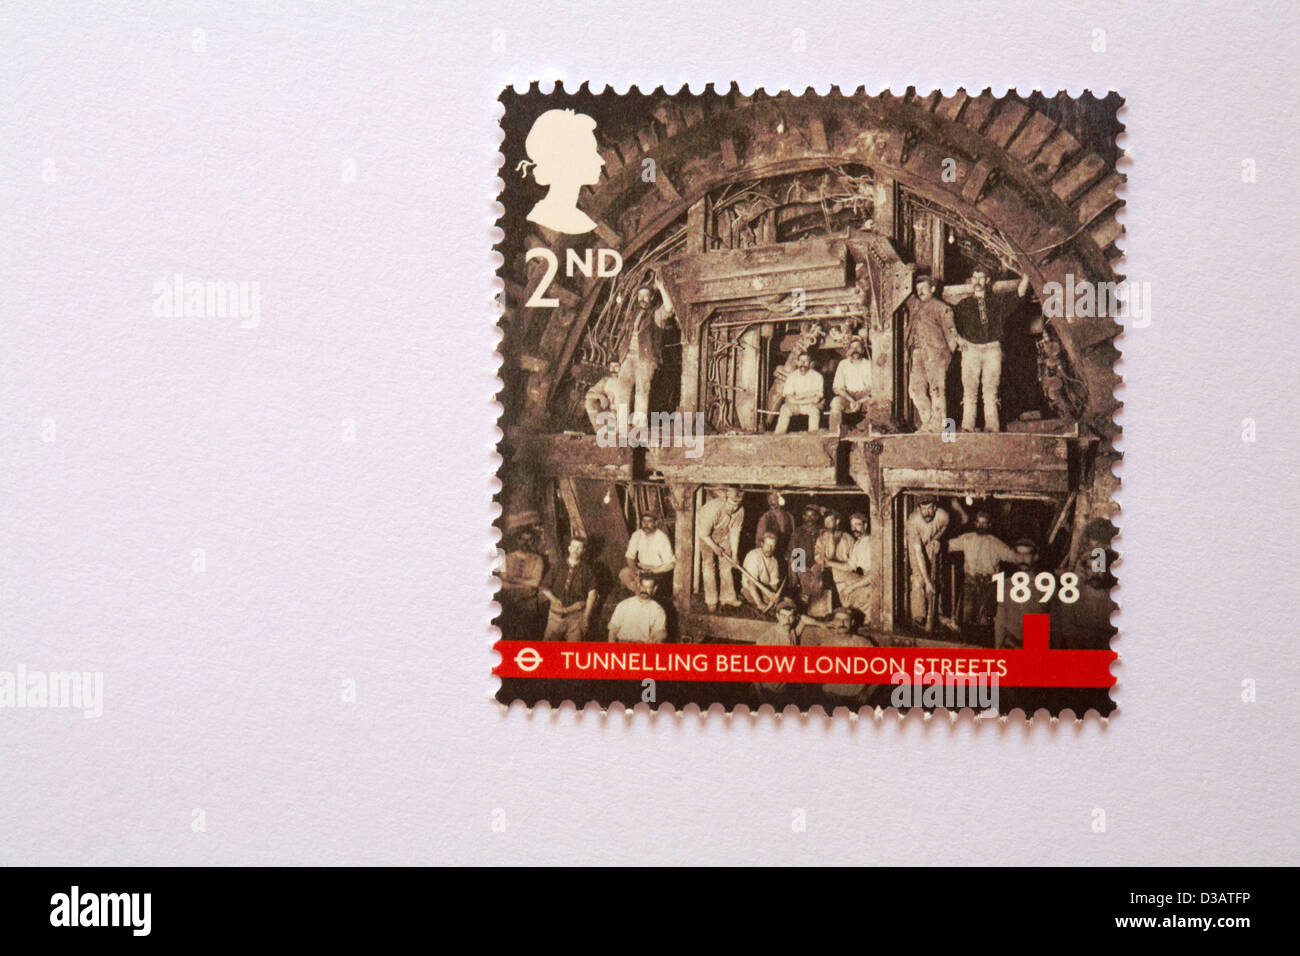 2nd class underground stamp on white envelope - Tunnelling below London streets 1898 - Stock Image